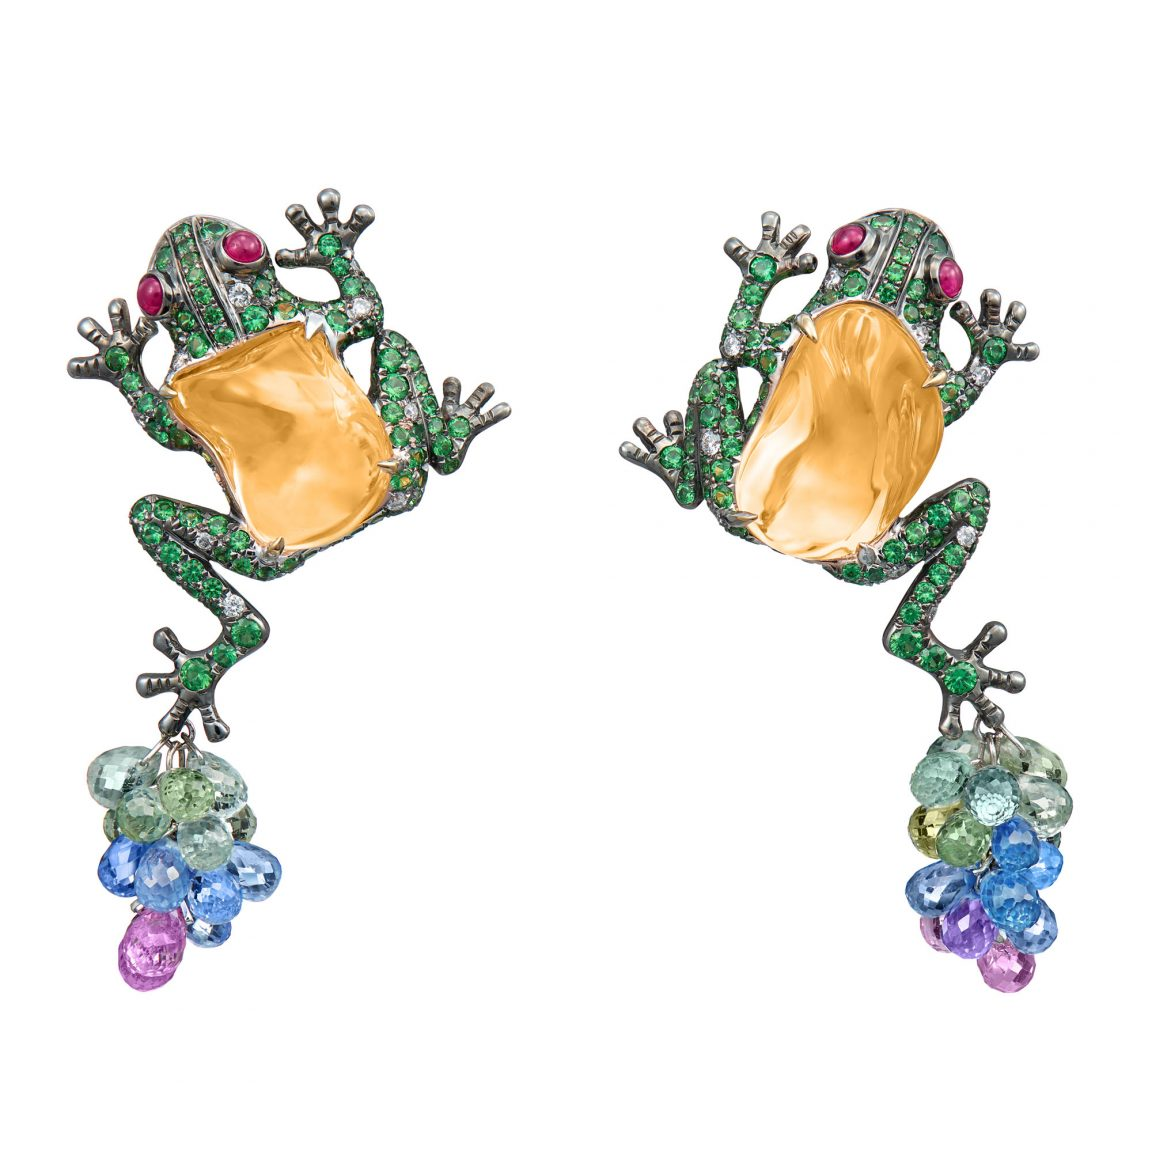 Leap Frogs Earrings